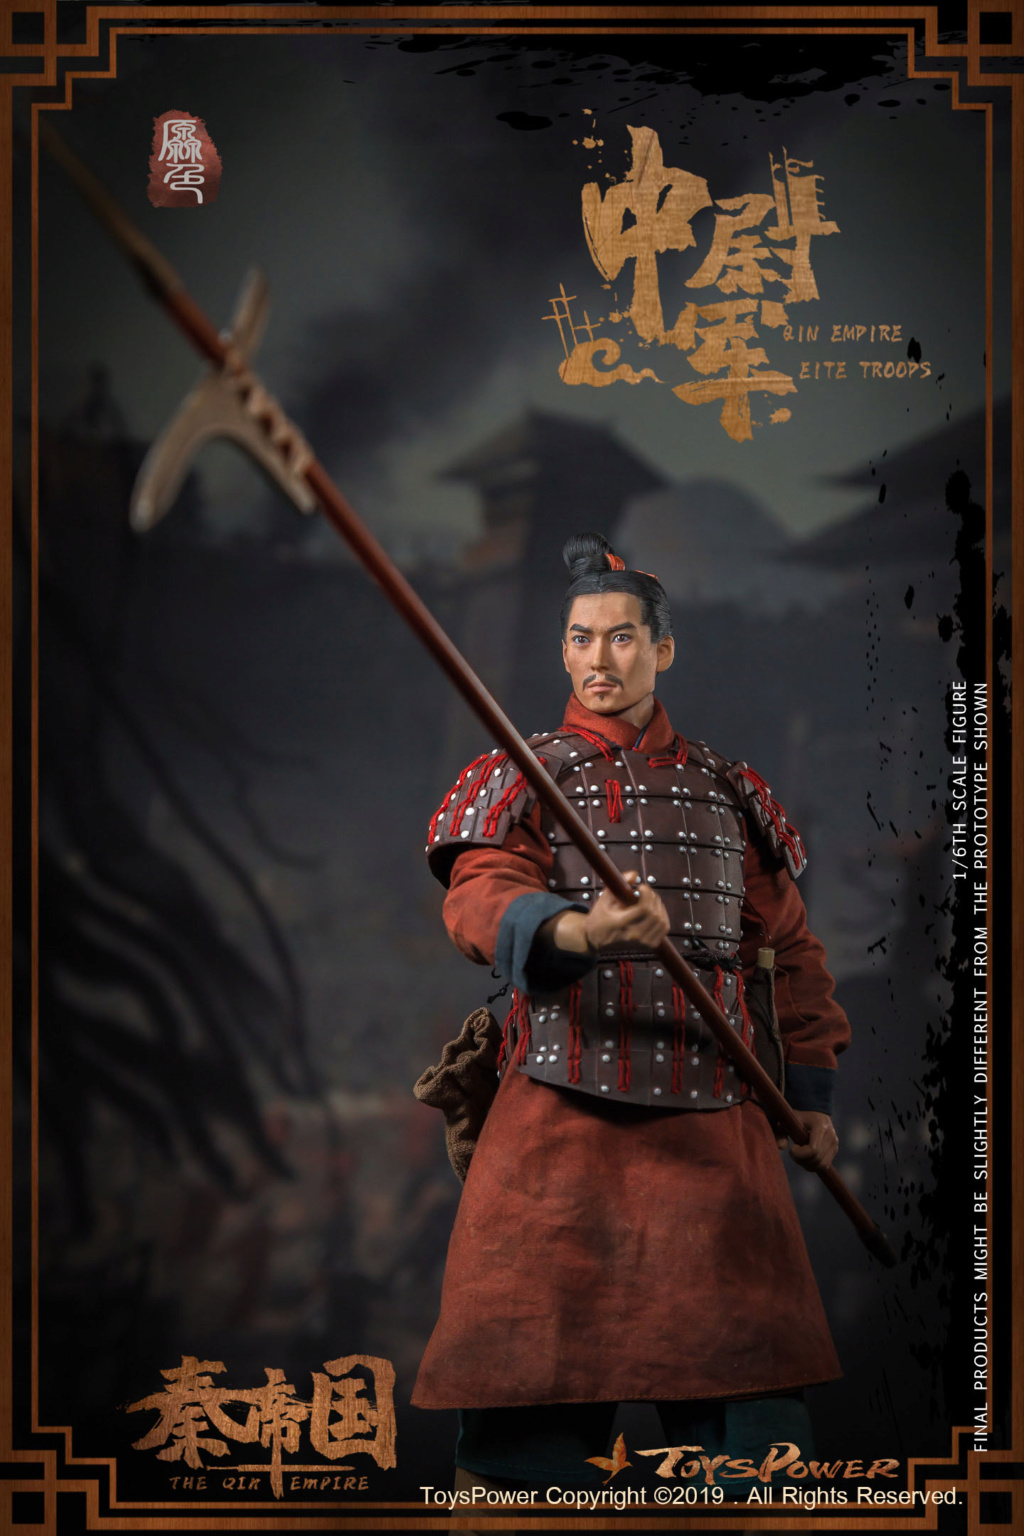 Army - NEW PRODUCT: Toyspower: 1/6 Qin Empire Lieutenant Army (Terracotta Warriors) movable doll CT012# (update armor piece drawing) 3258